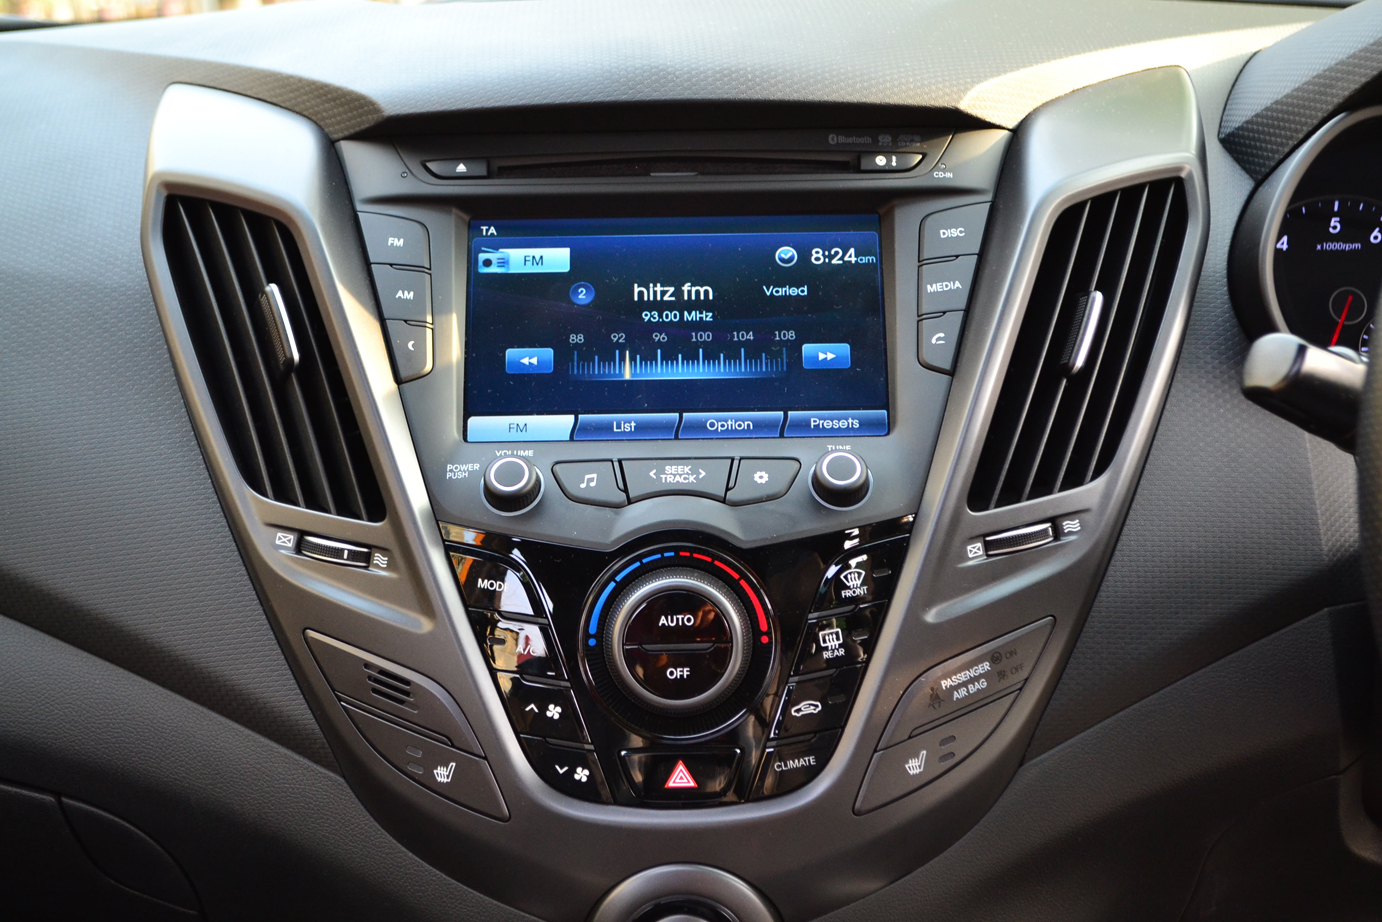 Hyundai Veloster Turbo Review Rover Discovery In Dash Wiring Harness Kit Ebay Also Rns 510 A 7 Colored Tft Touchscreen That Has Radio Cd Mp3 Aux Usb And Bluetooth Functions Sits The Center Of Dashboard Sound Reproduction Is Handled